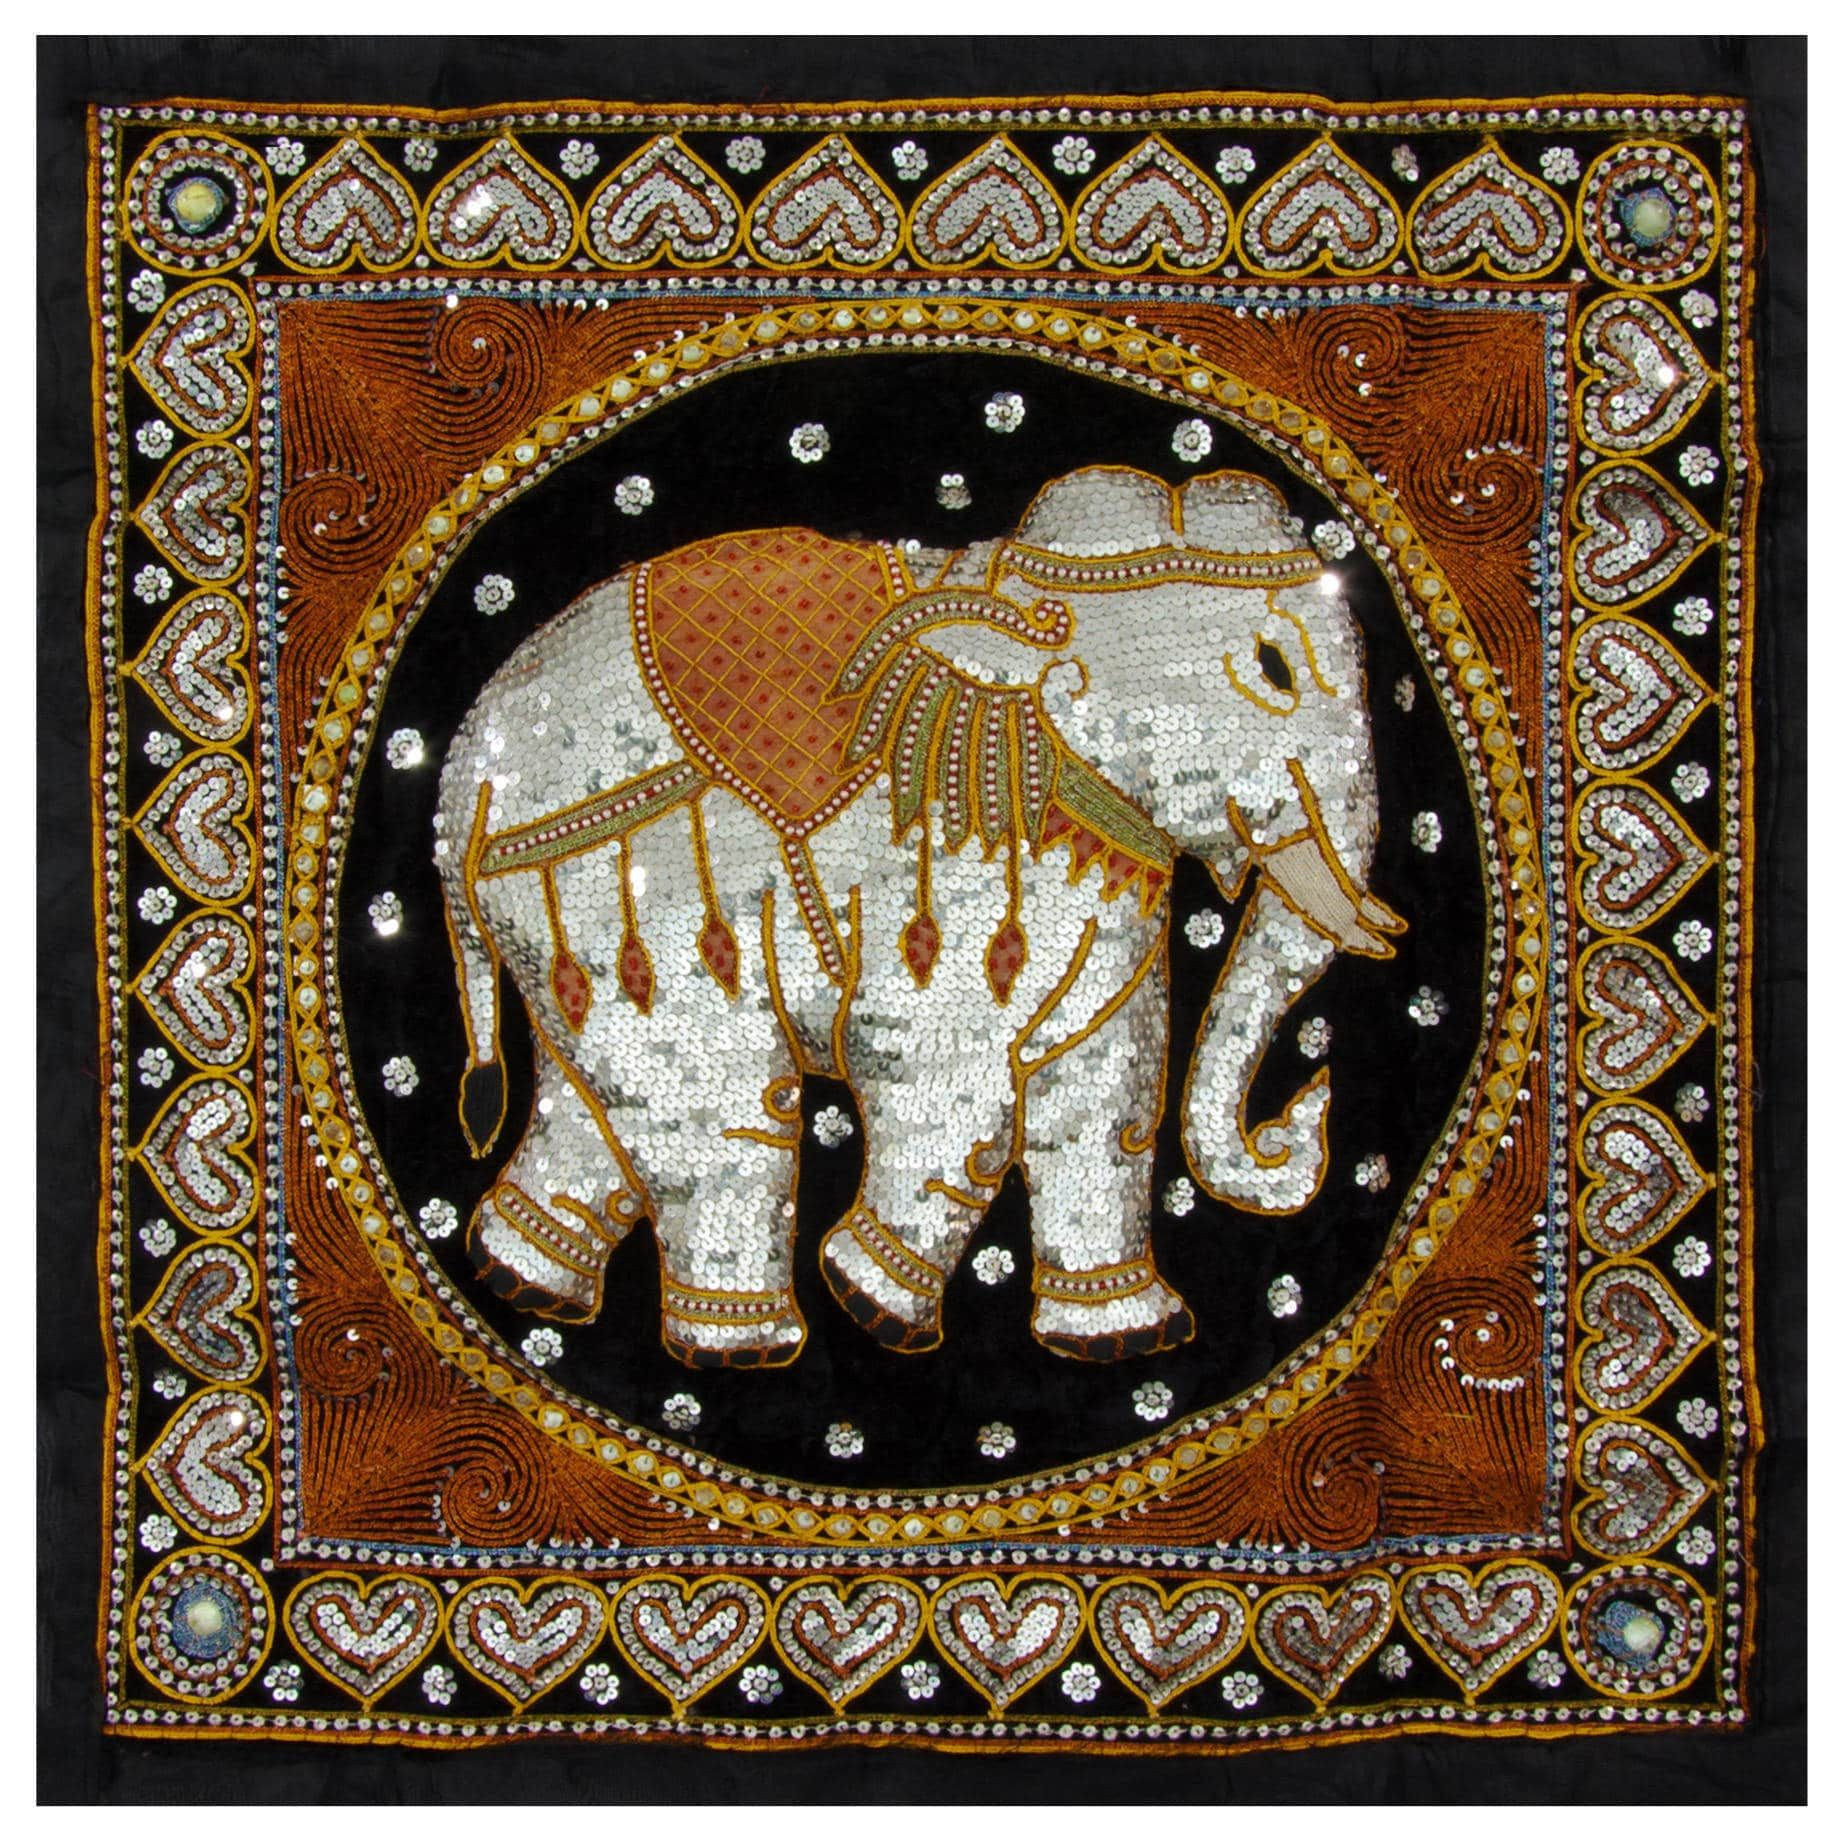 Hand Embroidered Burmese Elephant Tapestry Wall Hanging